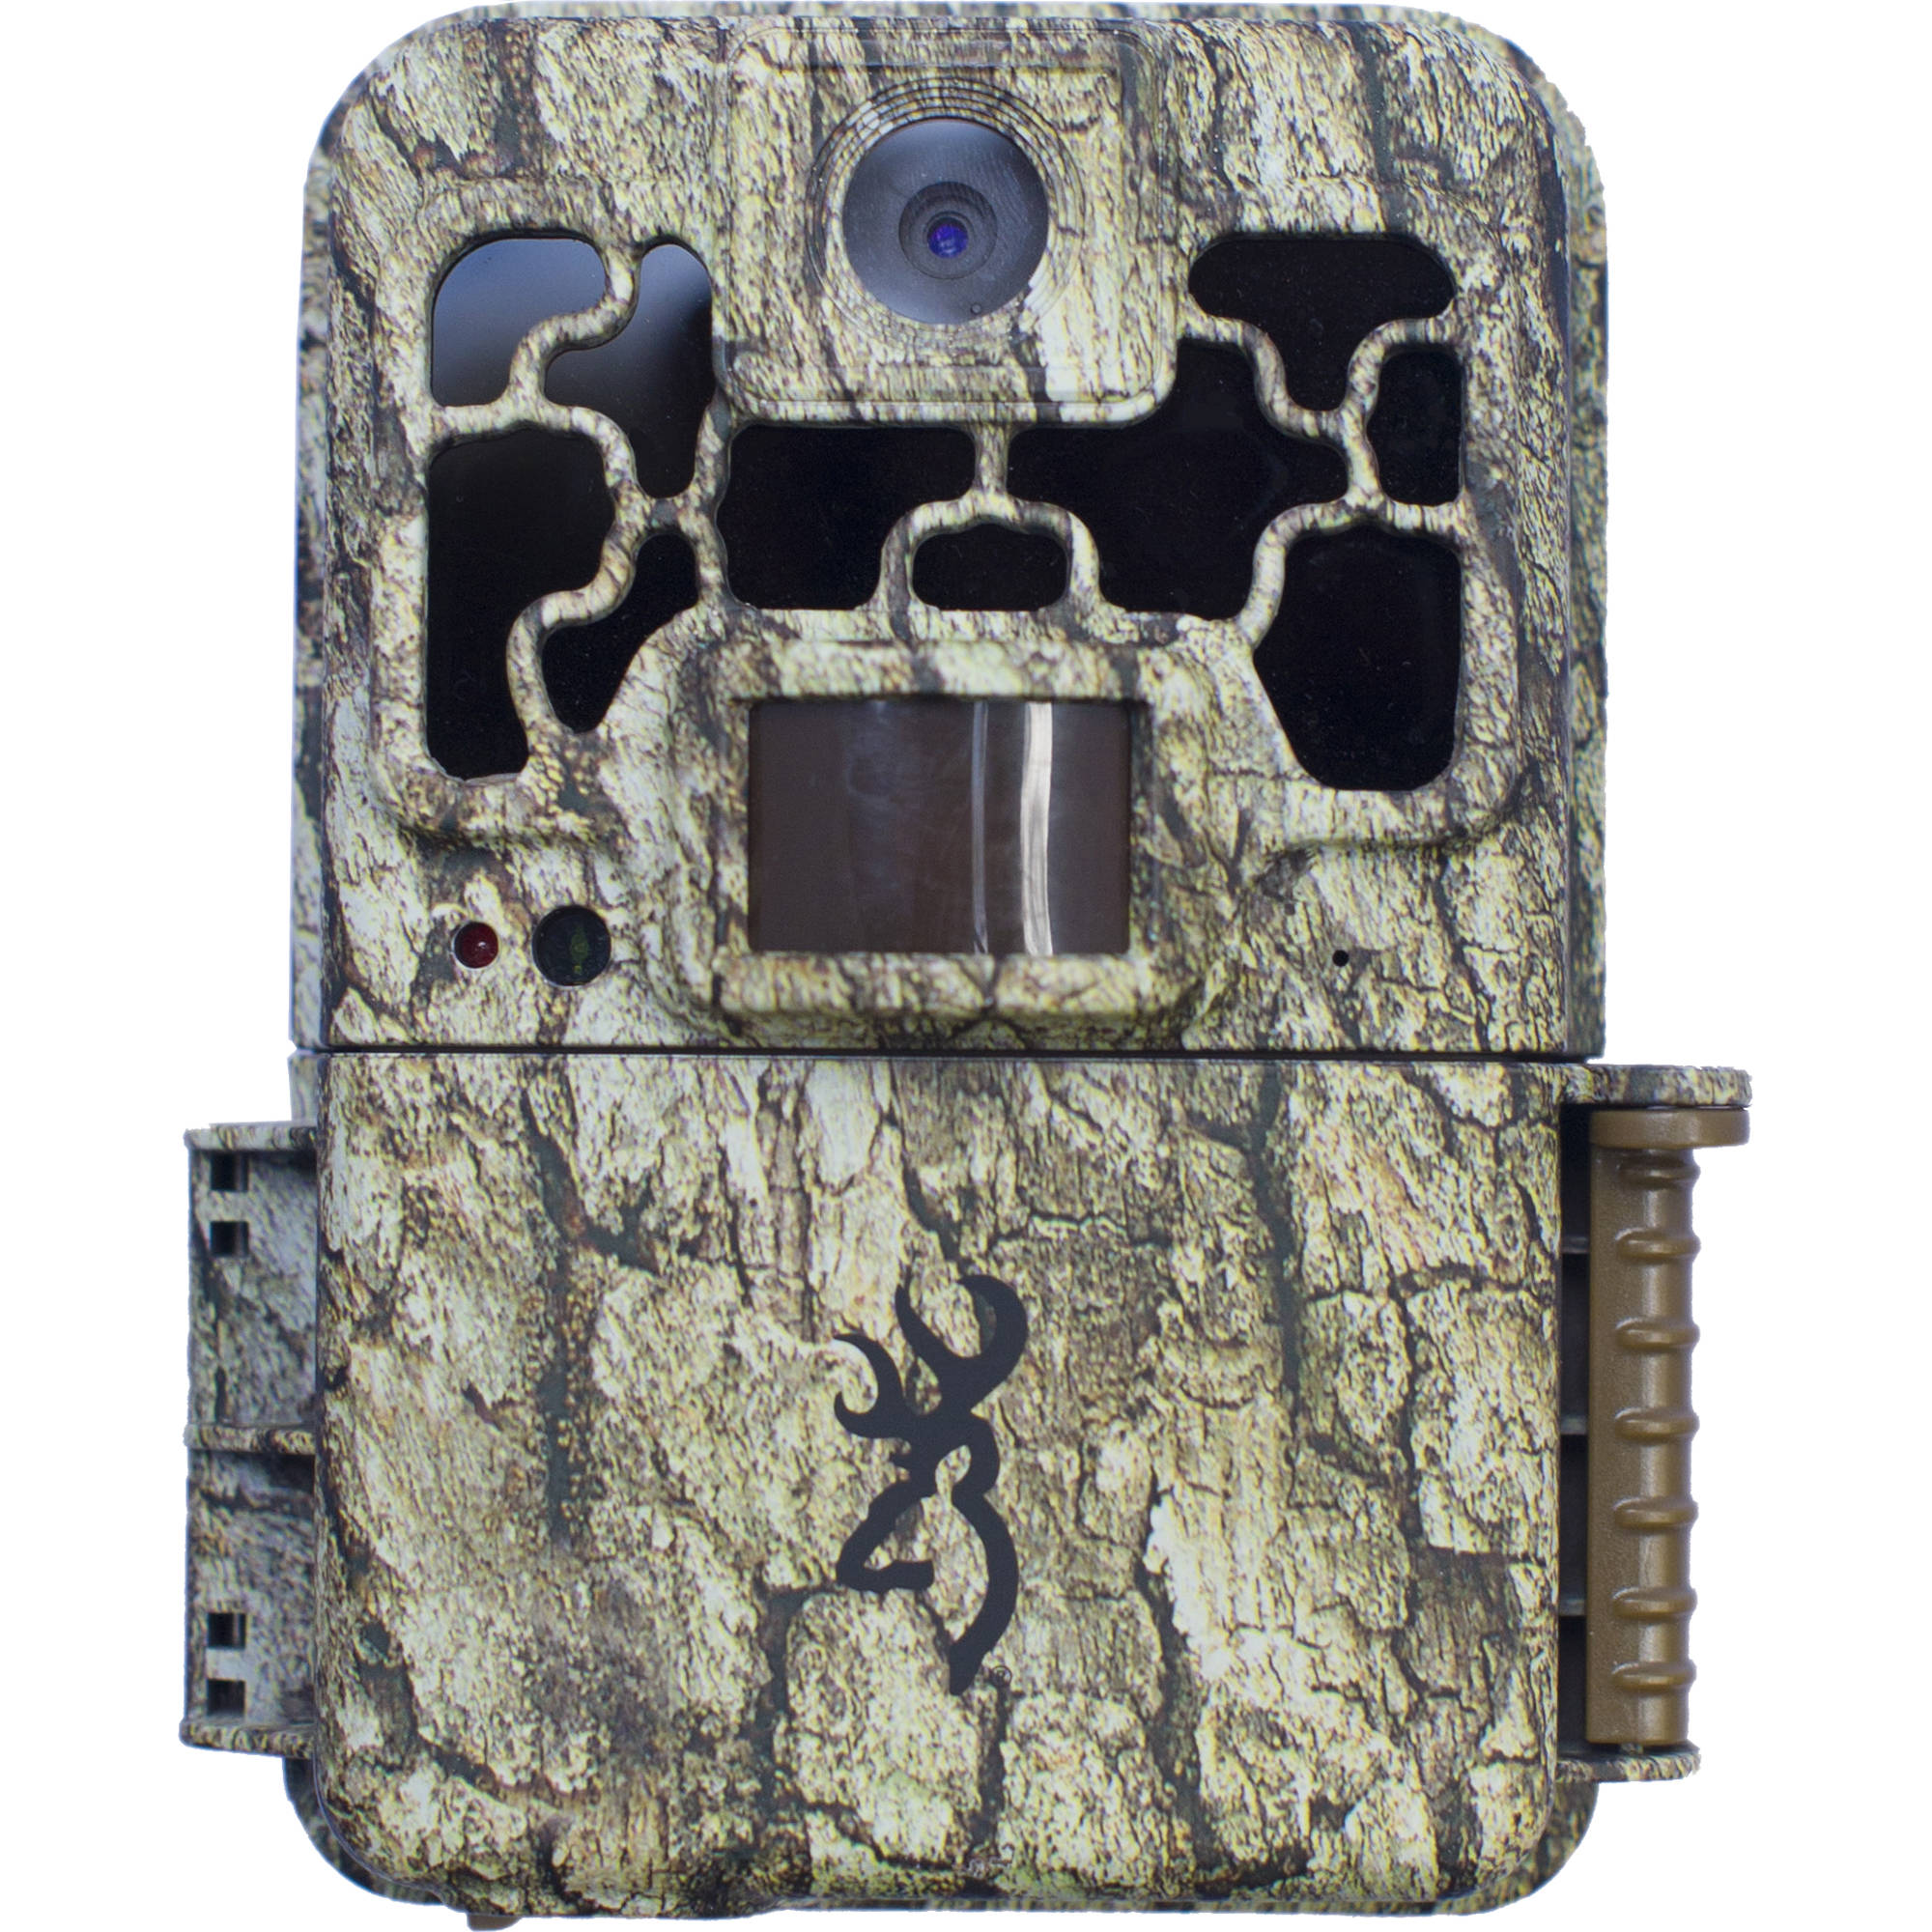 Browning trail camera firmware update